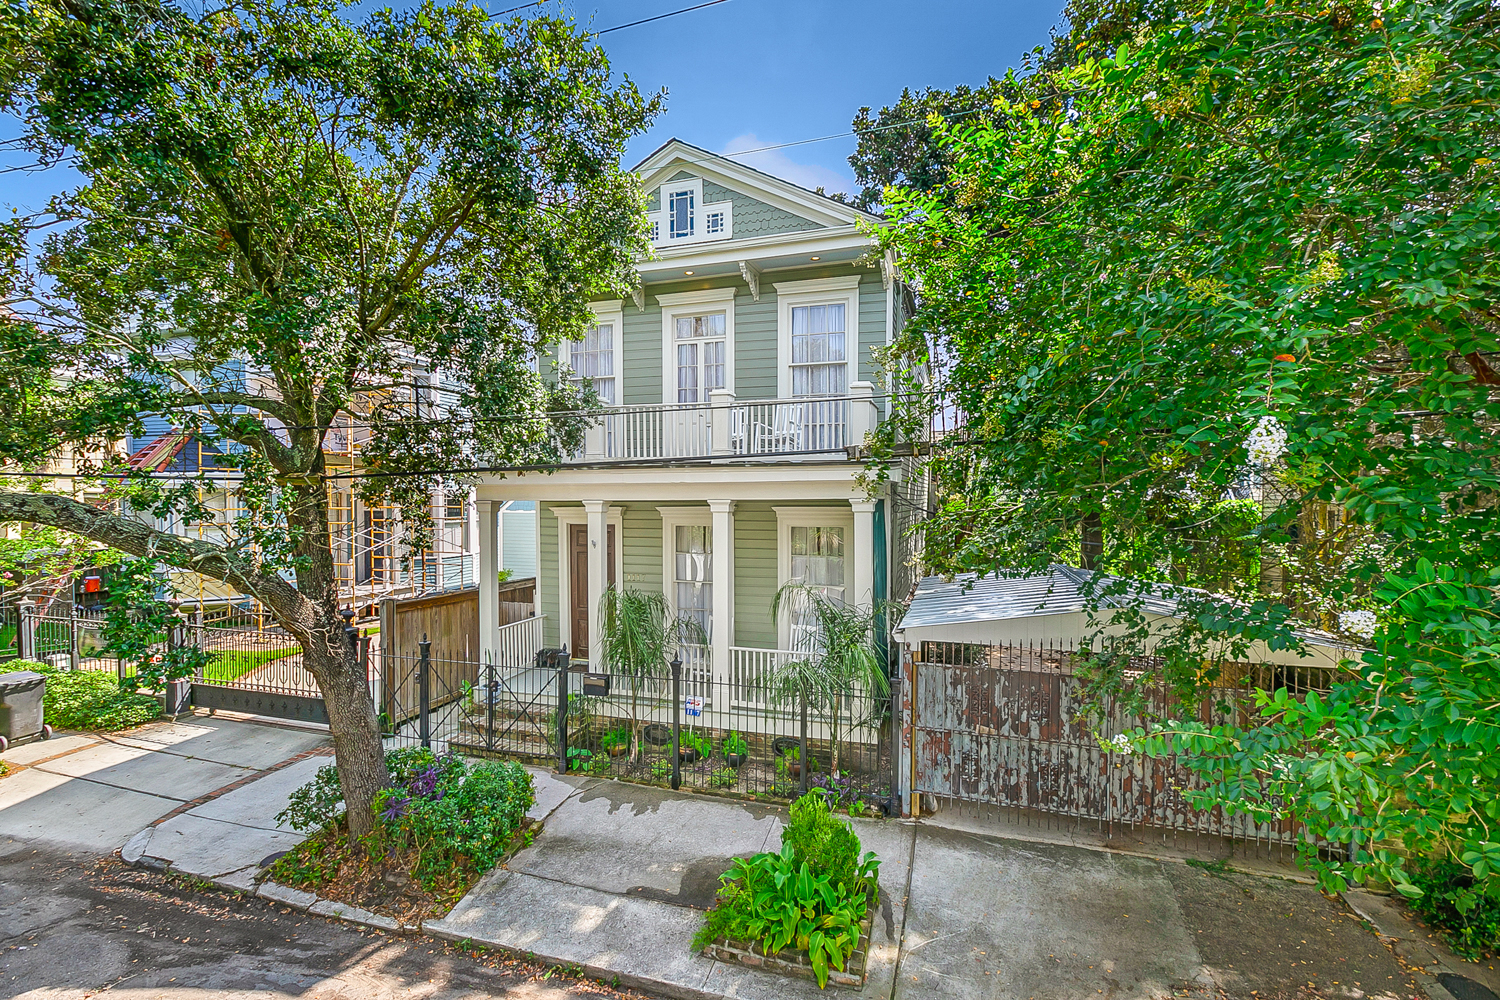 Furnished Garden District home. Large and spacious 2 bedroom/ 2 full bath home.  It is just a few blocks from St. Charles Ave to ride the street car. It is one block away from Magazine street. Walk to many restaurants, coffee shops and retail store. Fully furnished.